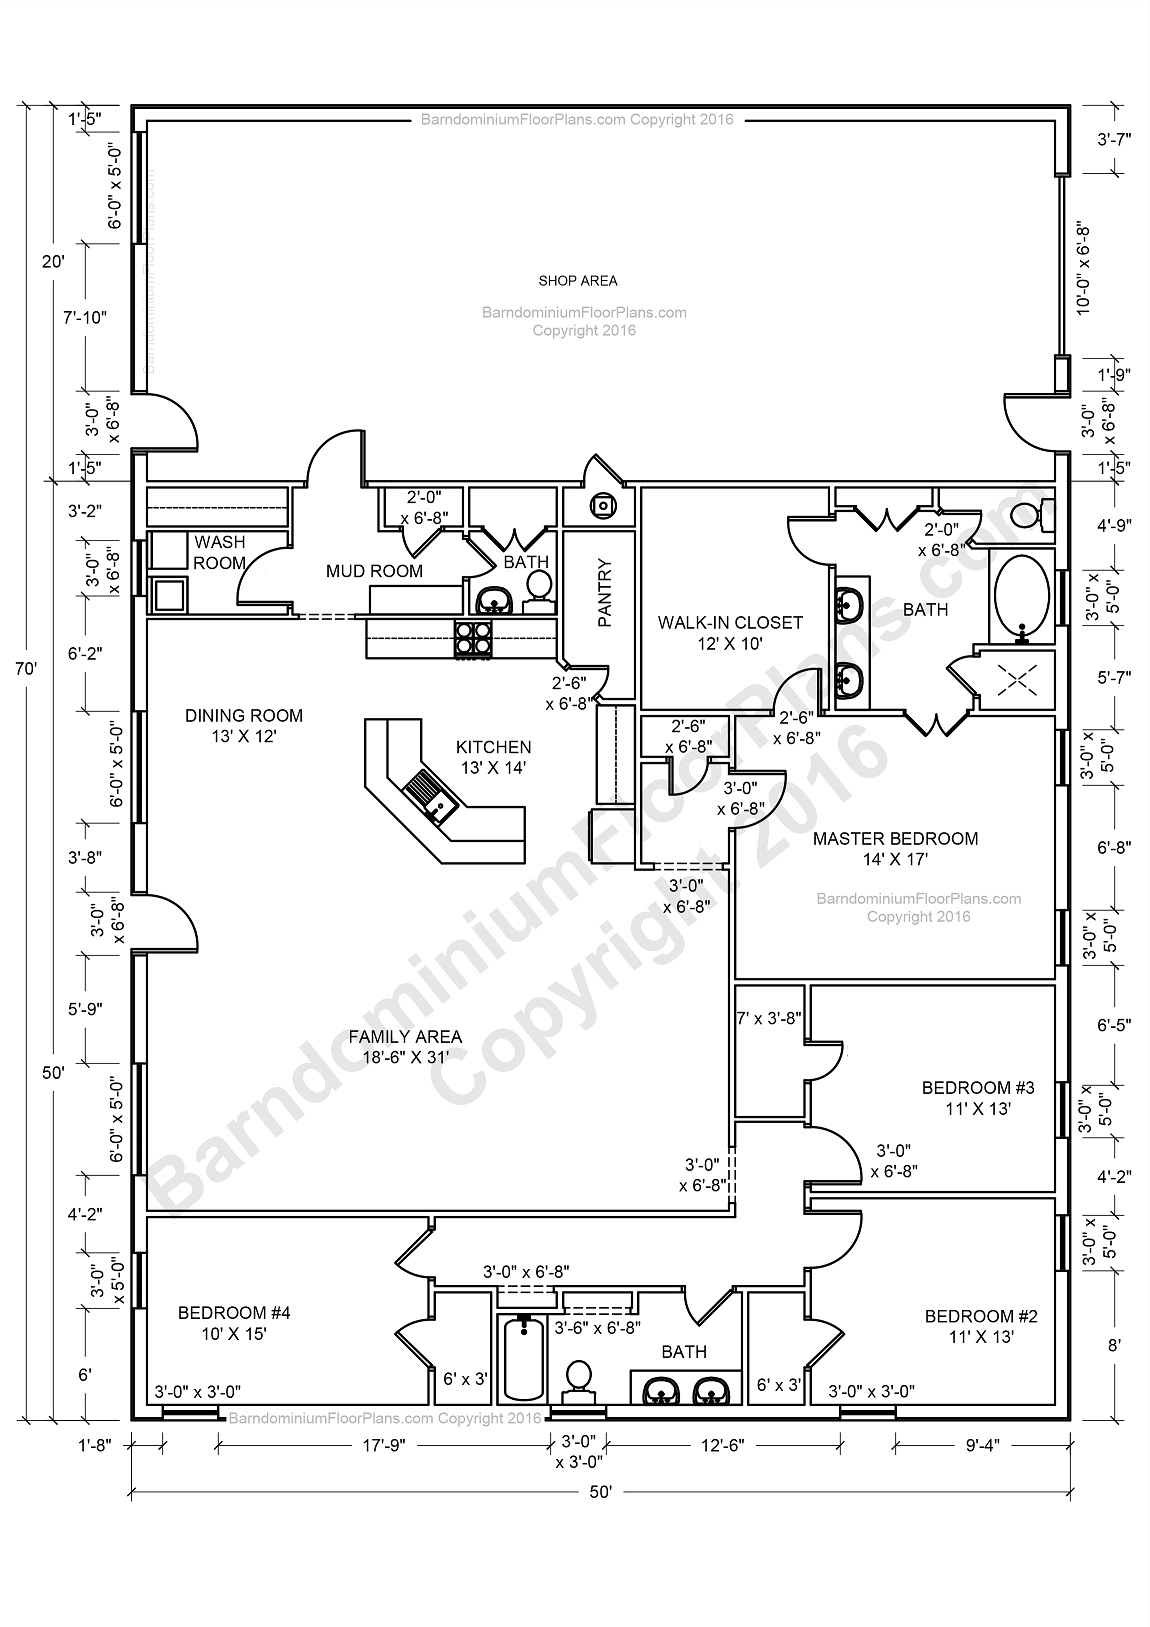 Barndominium floor plans barndominium floor plans 1 800 for Design your own metal building home